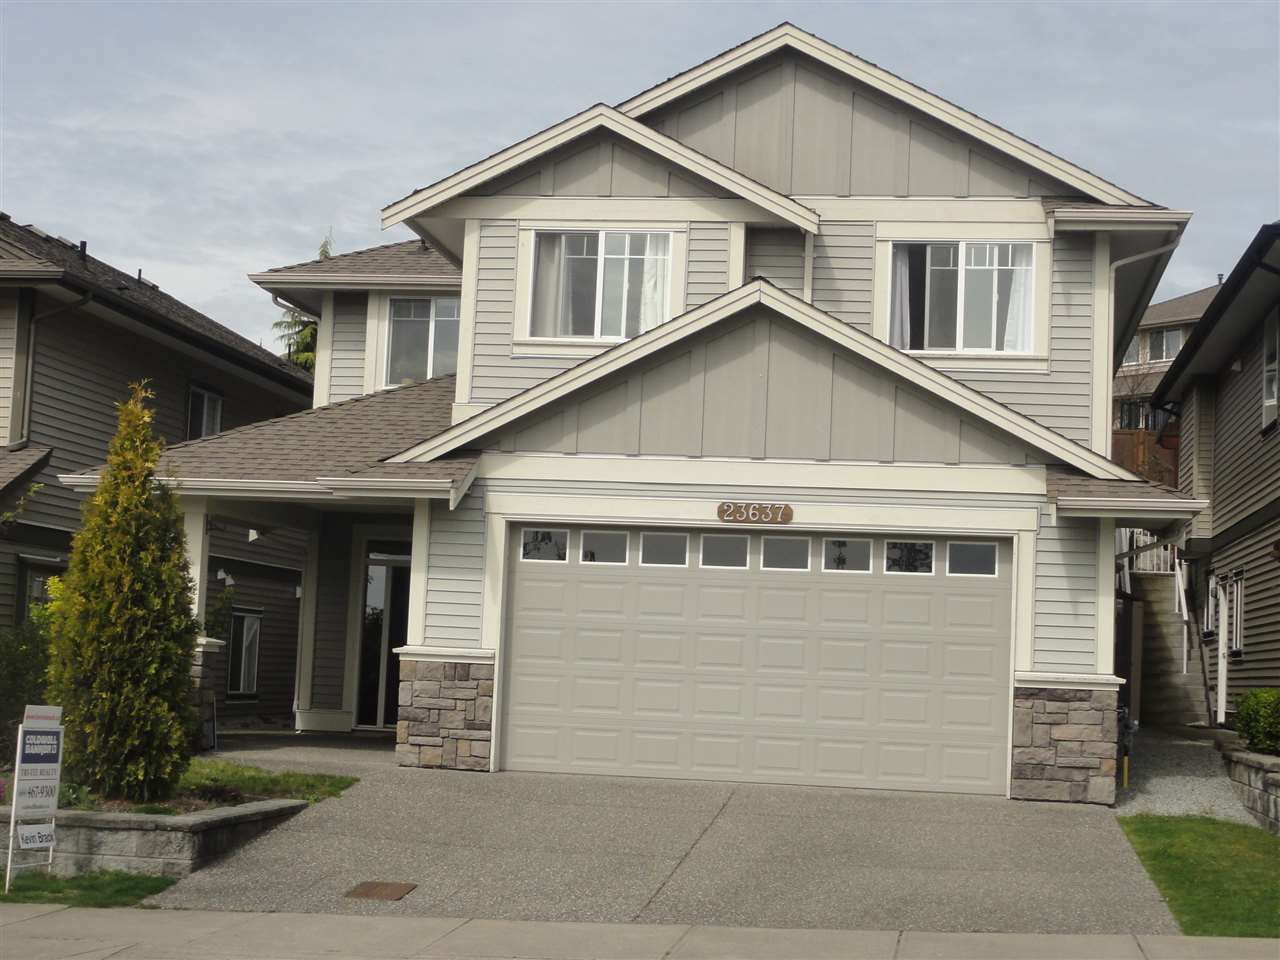 Main Photo: 23637 133 AVENUE in Maple Ridge: Silver Valley House for sale : MLS®# R2053343